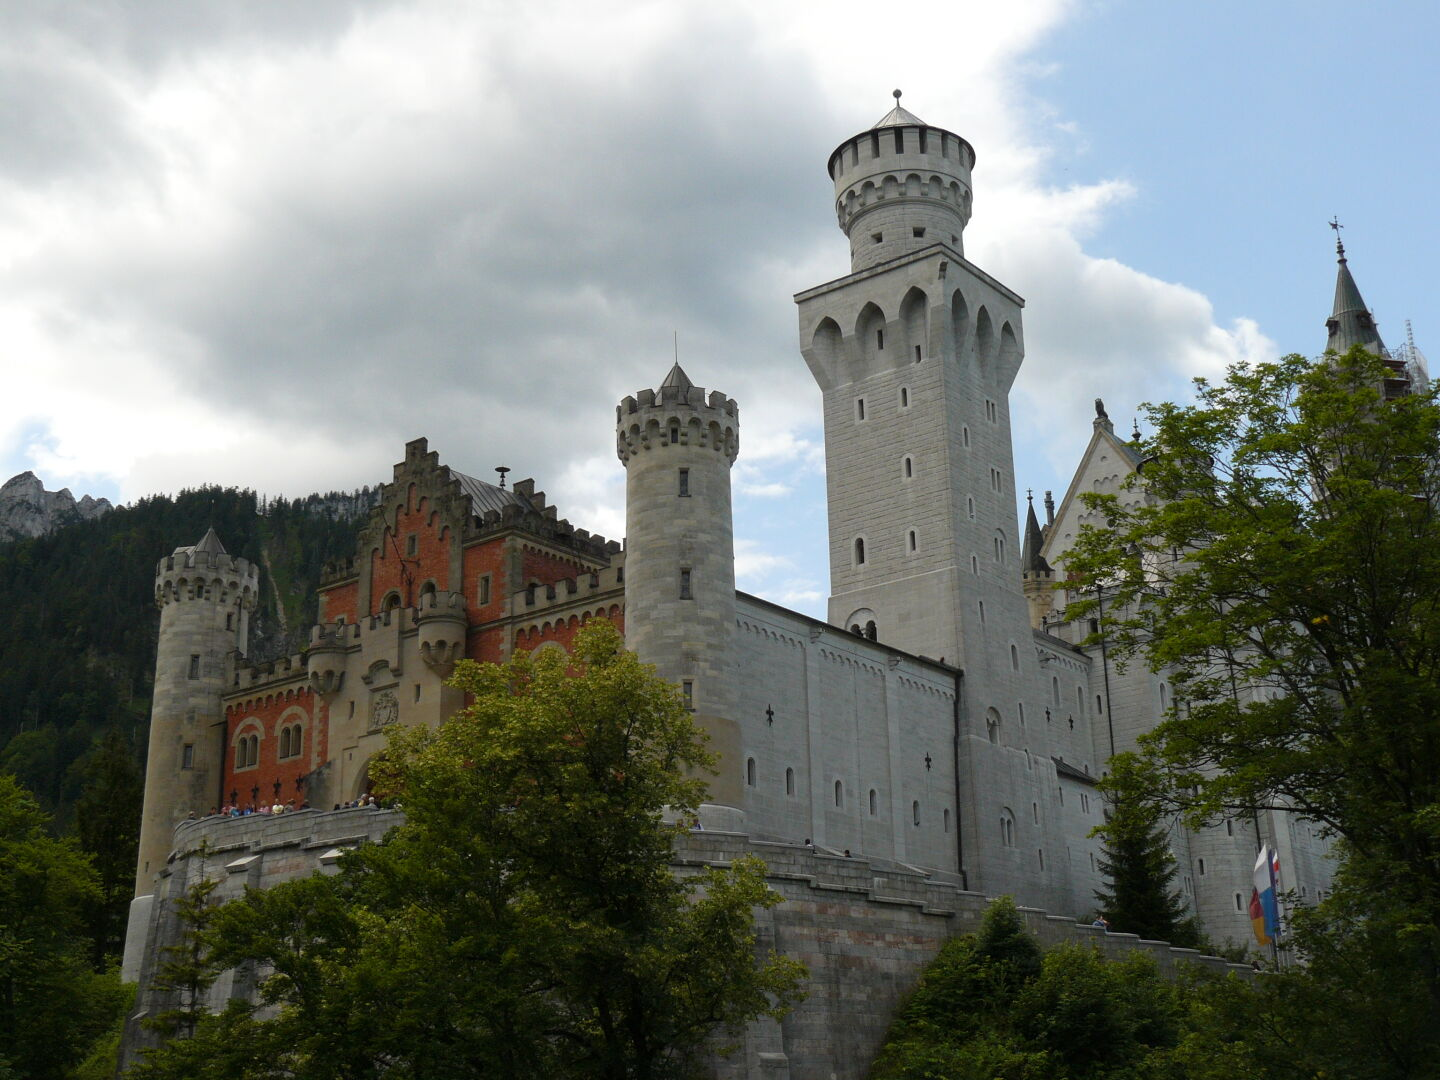 And here it is, Germany's most famous building, from the north-east. Castle Neuschwanstein. Commissioned bei King Ludwig II, it wasn't even finished when he died at age 41.